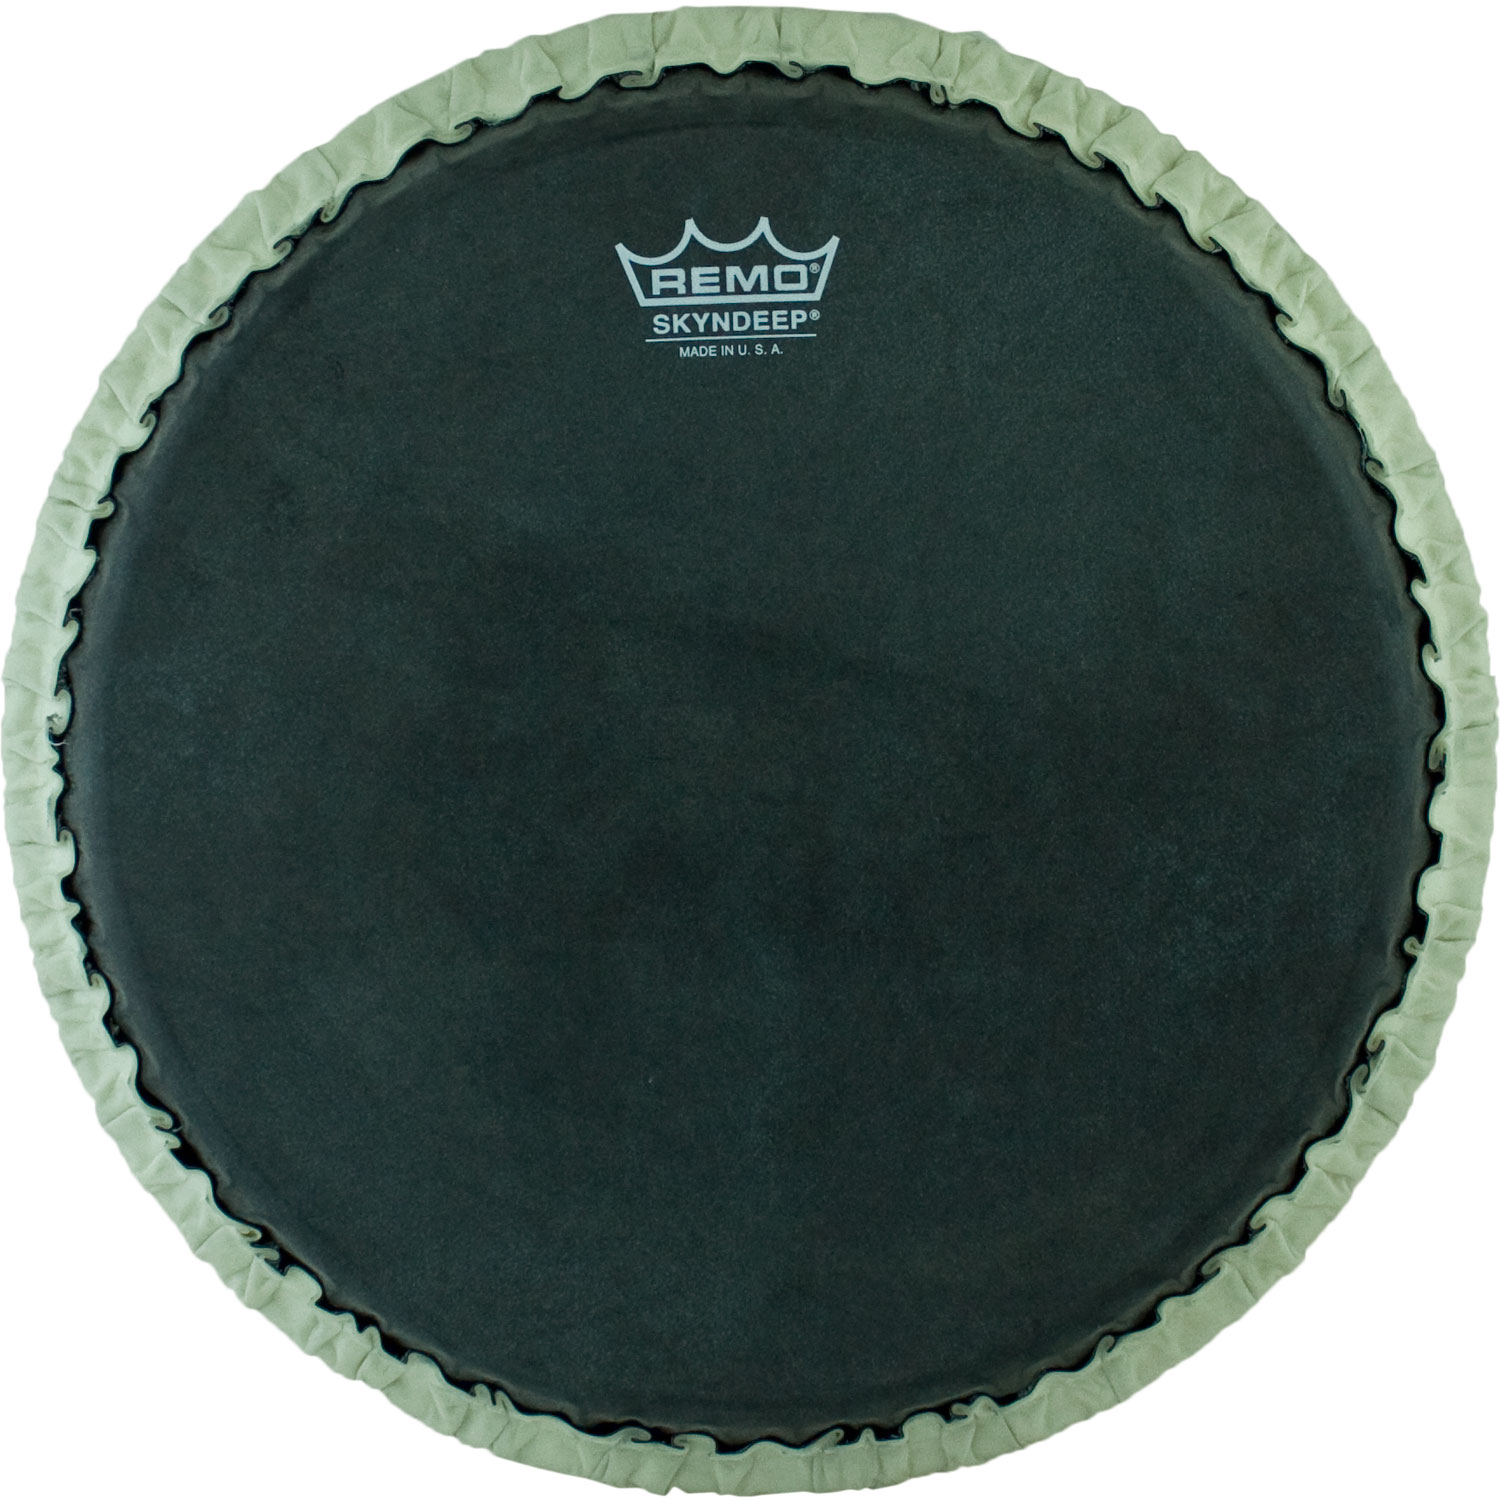 "Remo 11.75"" Tucked Skyndeep Conga Drum Head with Black Calfskin Graphic"